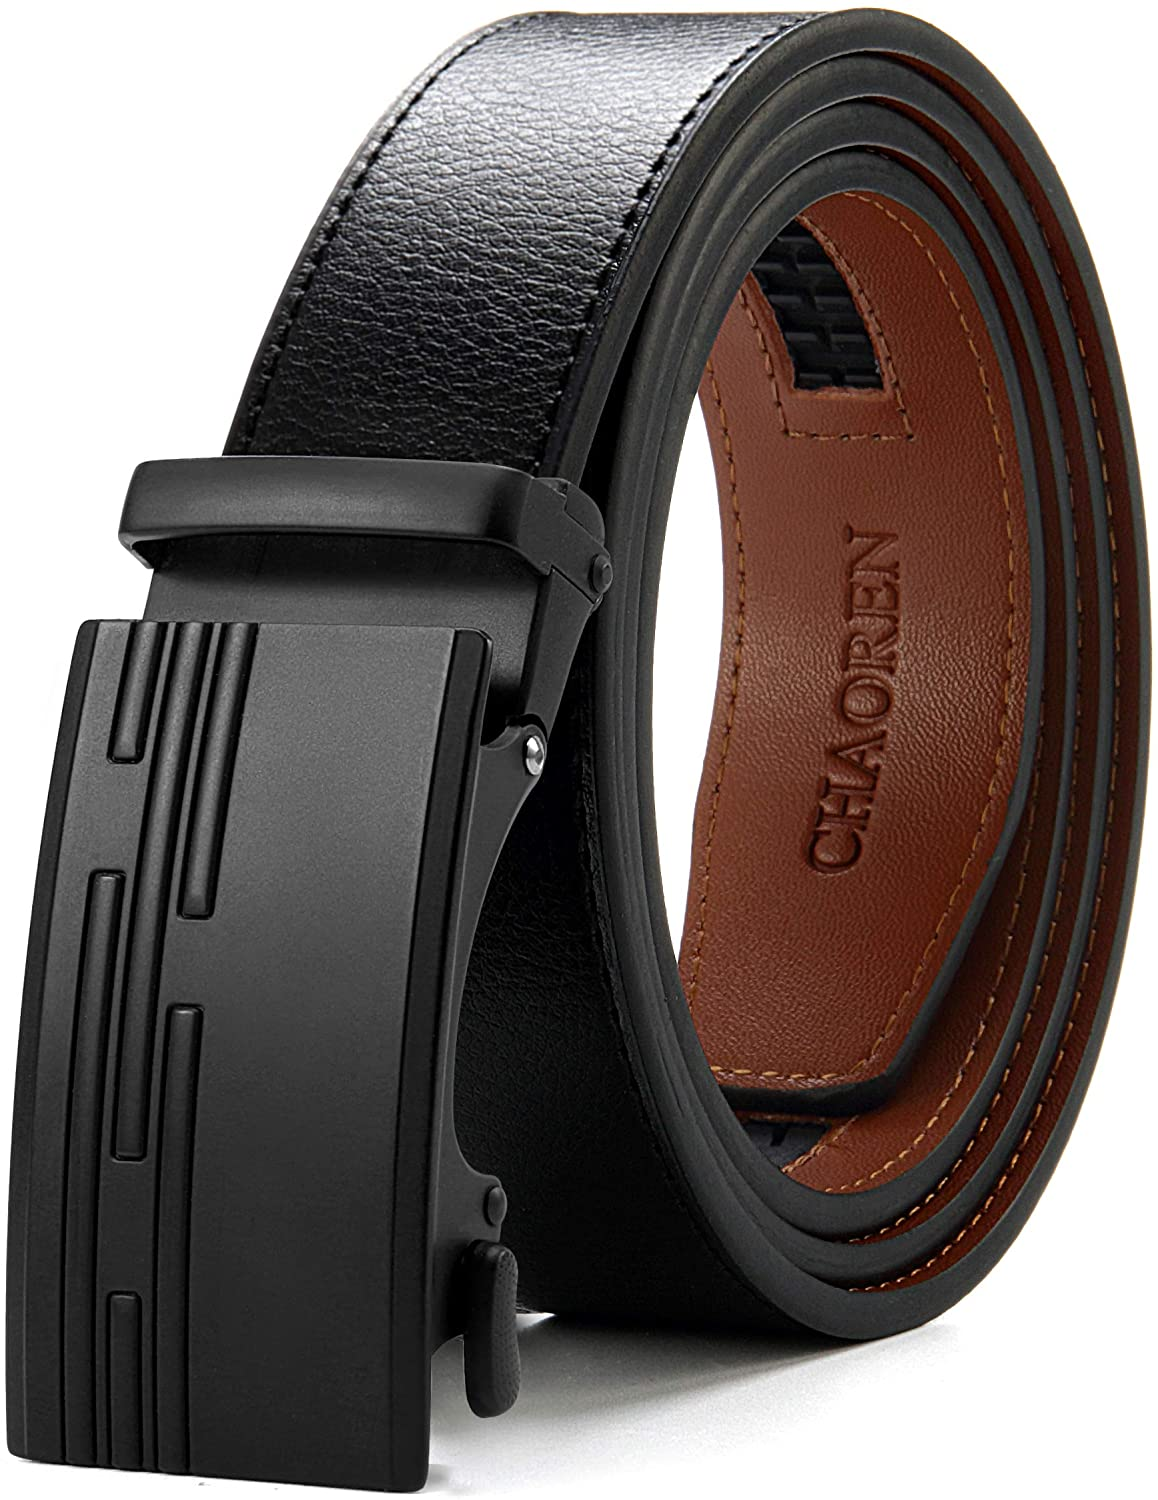 CHAOREN Casual Ratchet Belt with Automatic Slide Buckle,Genuine Leather belt Trim to Fit